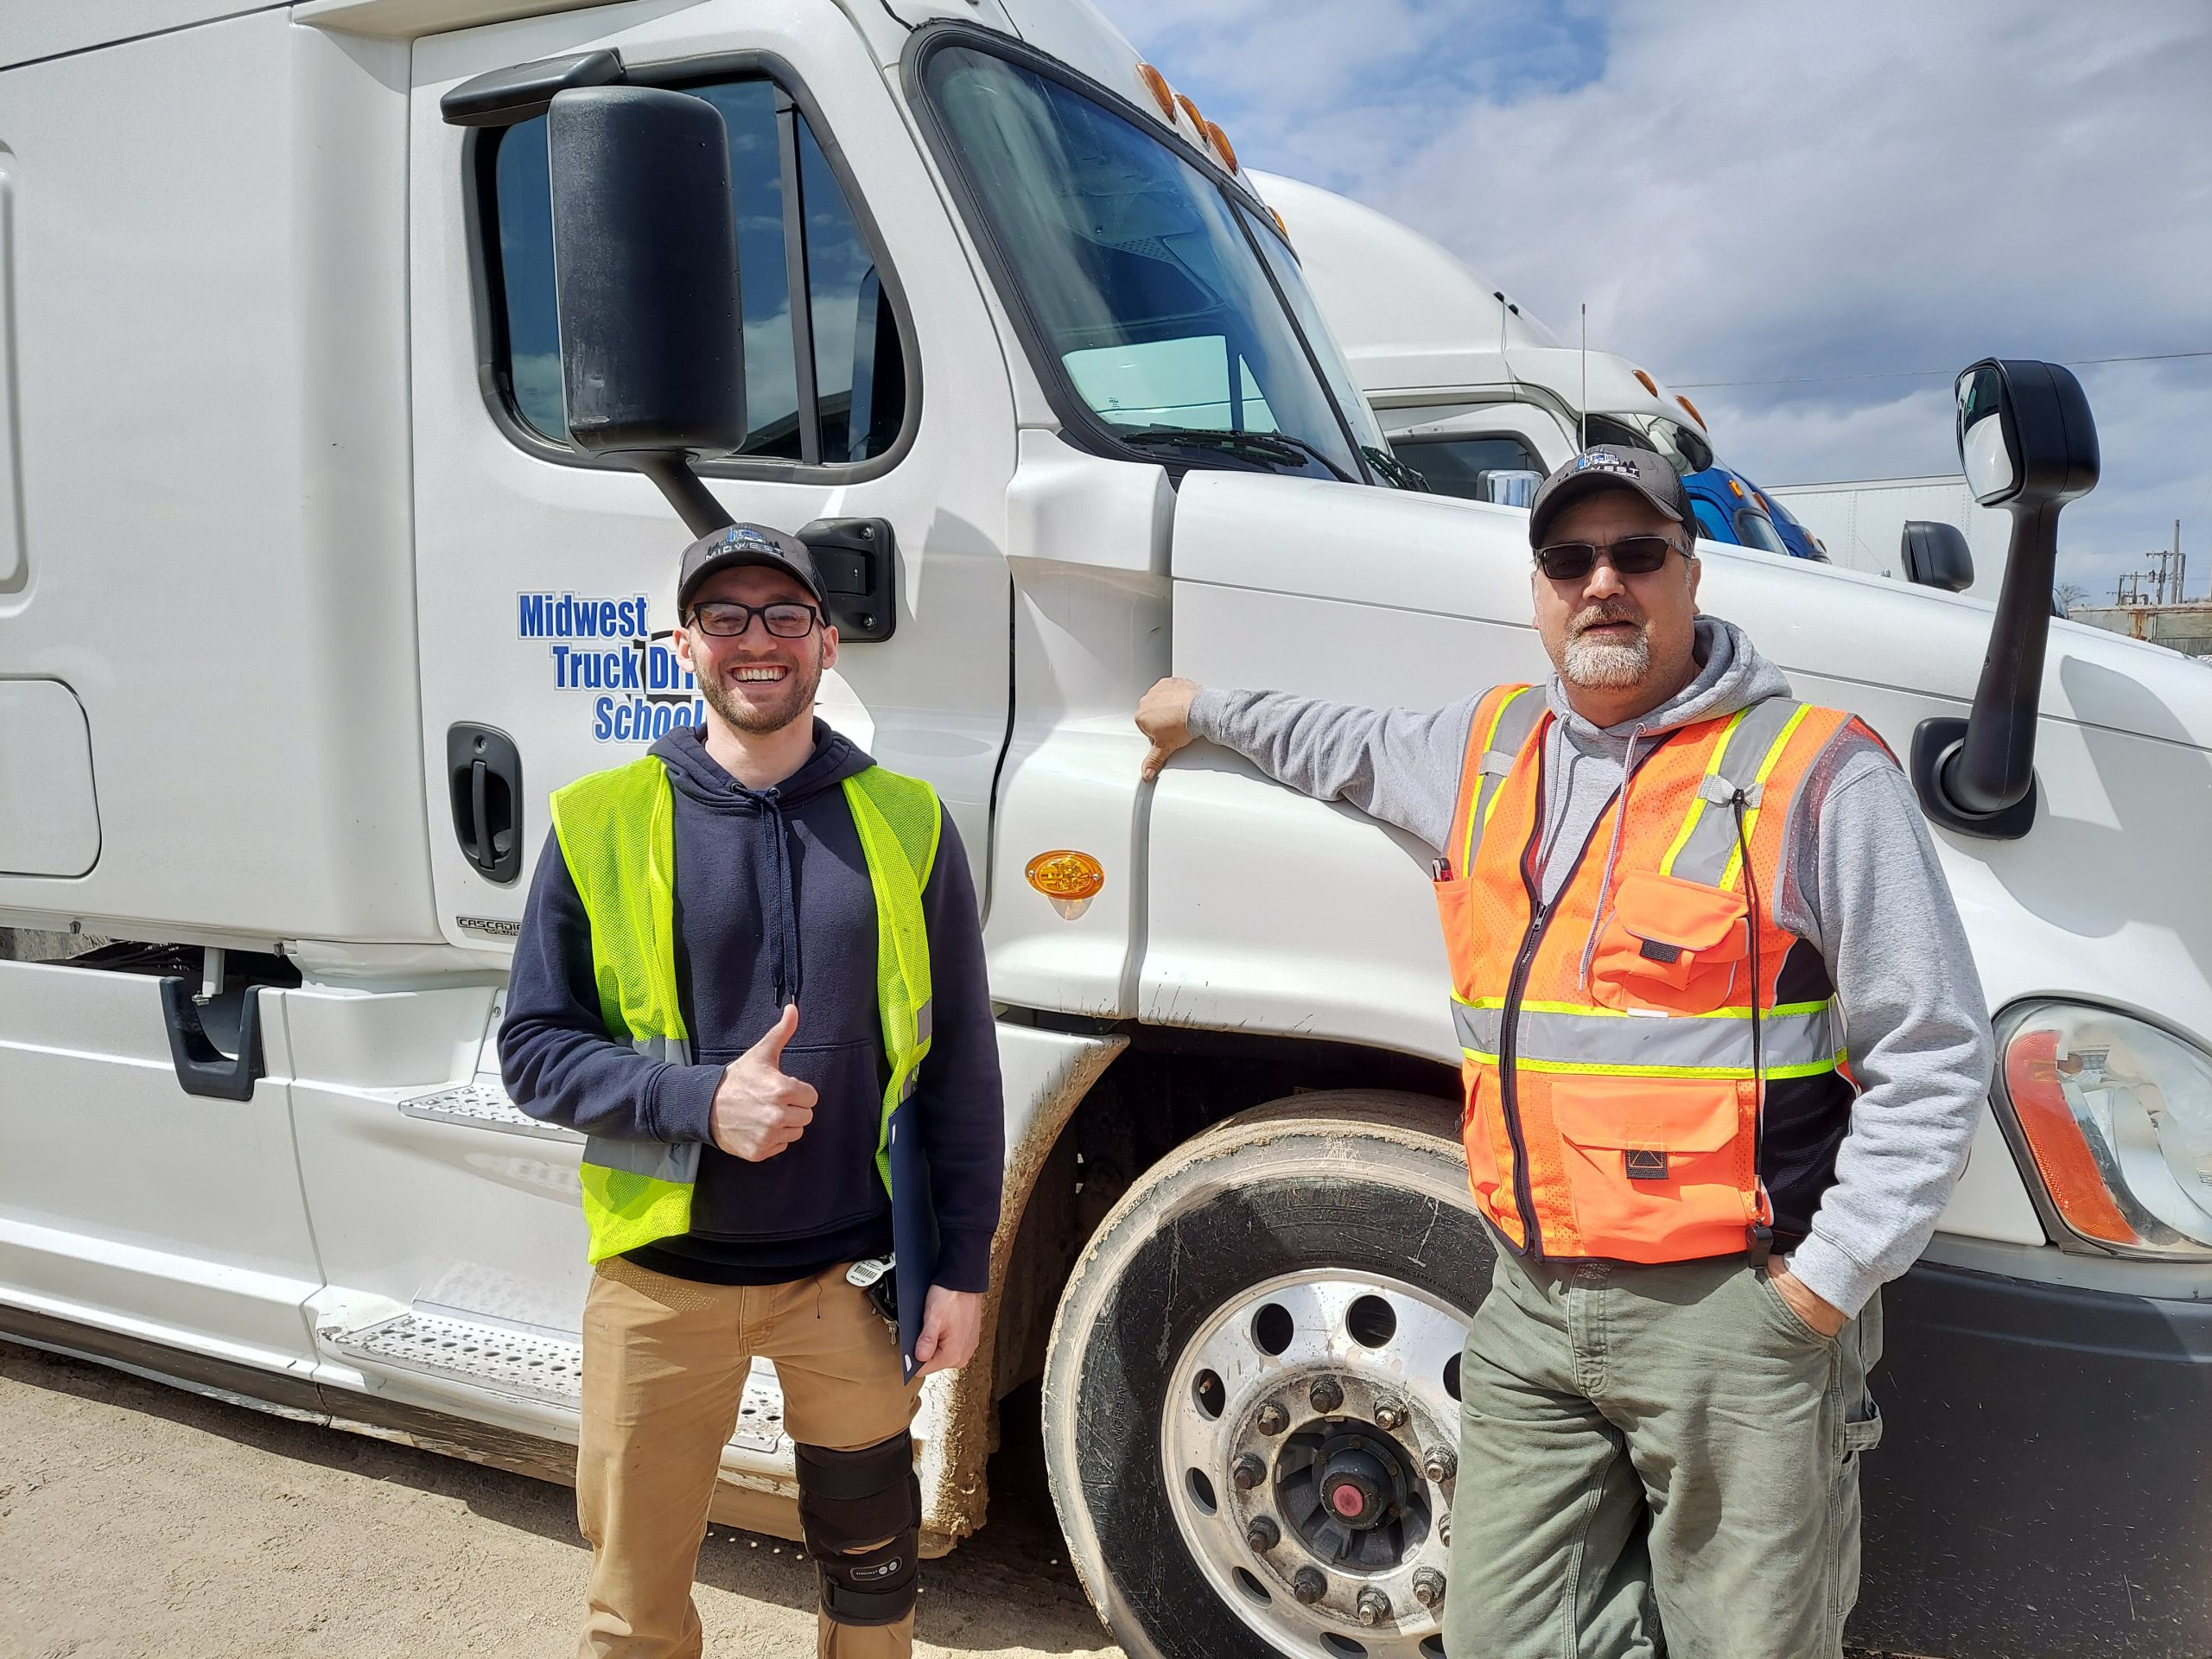 Jacob and his trainer stand in front of a Midwest Truck Driving School truck.